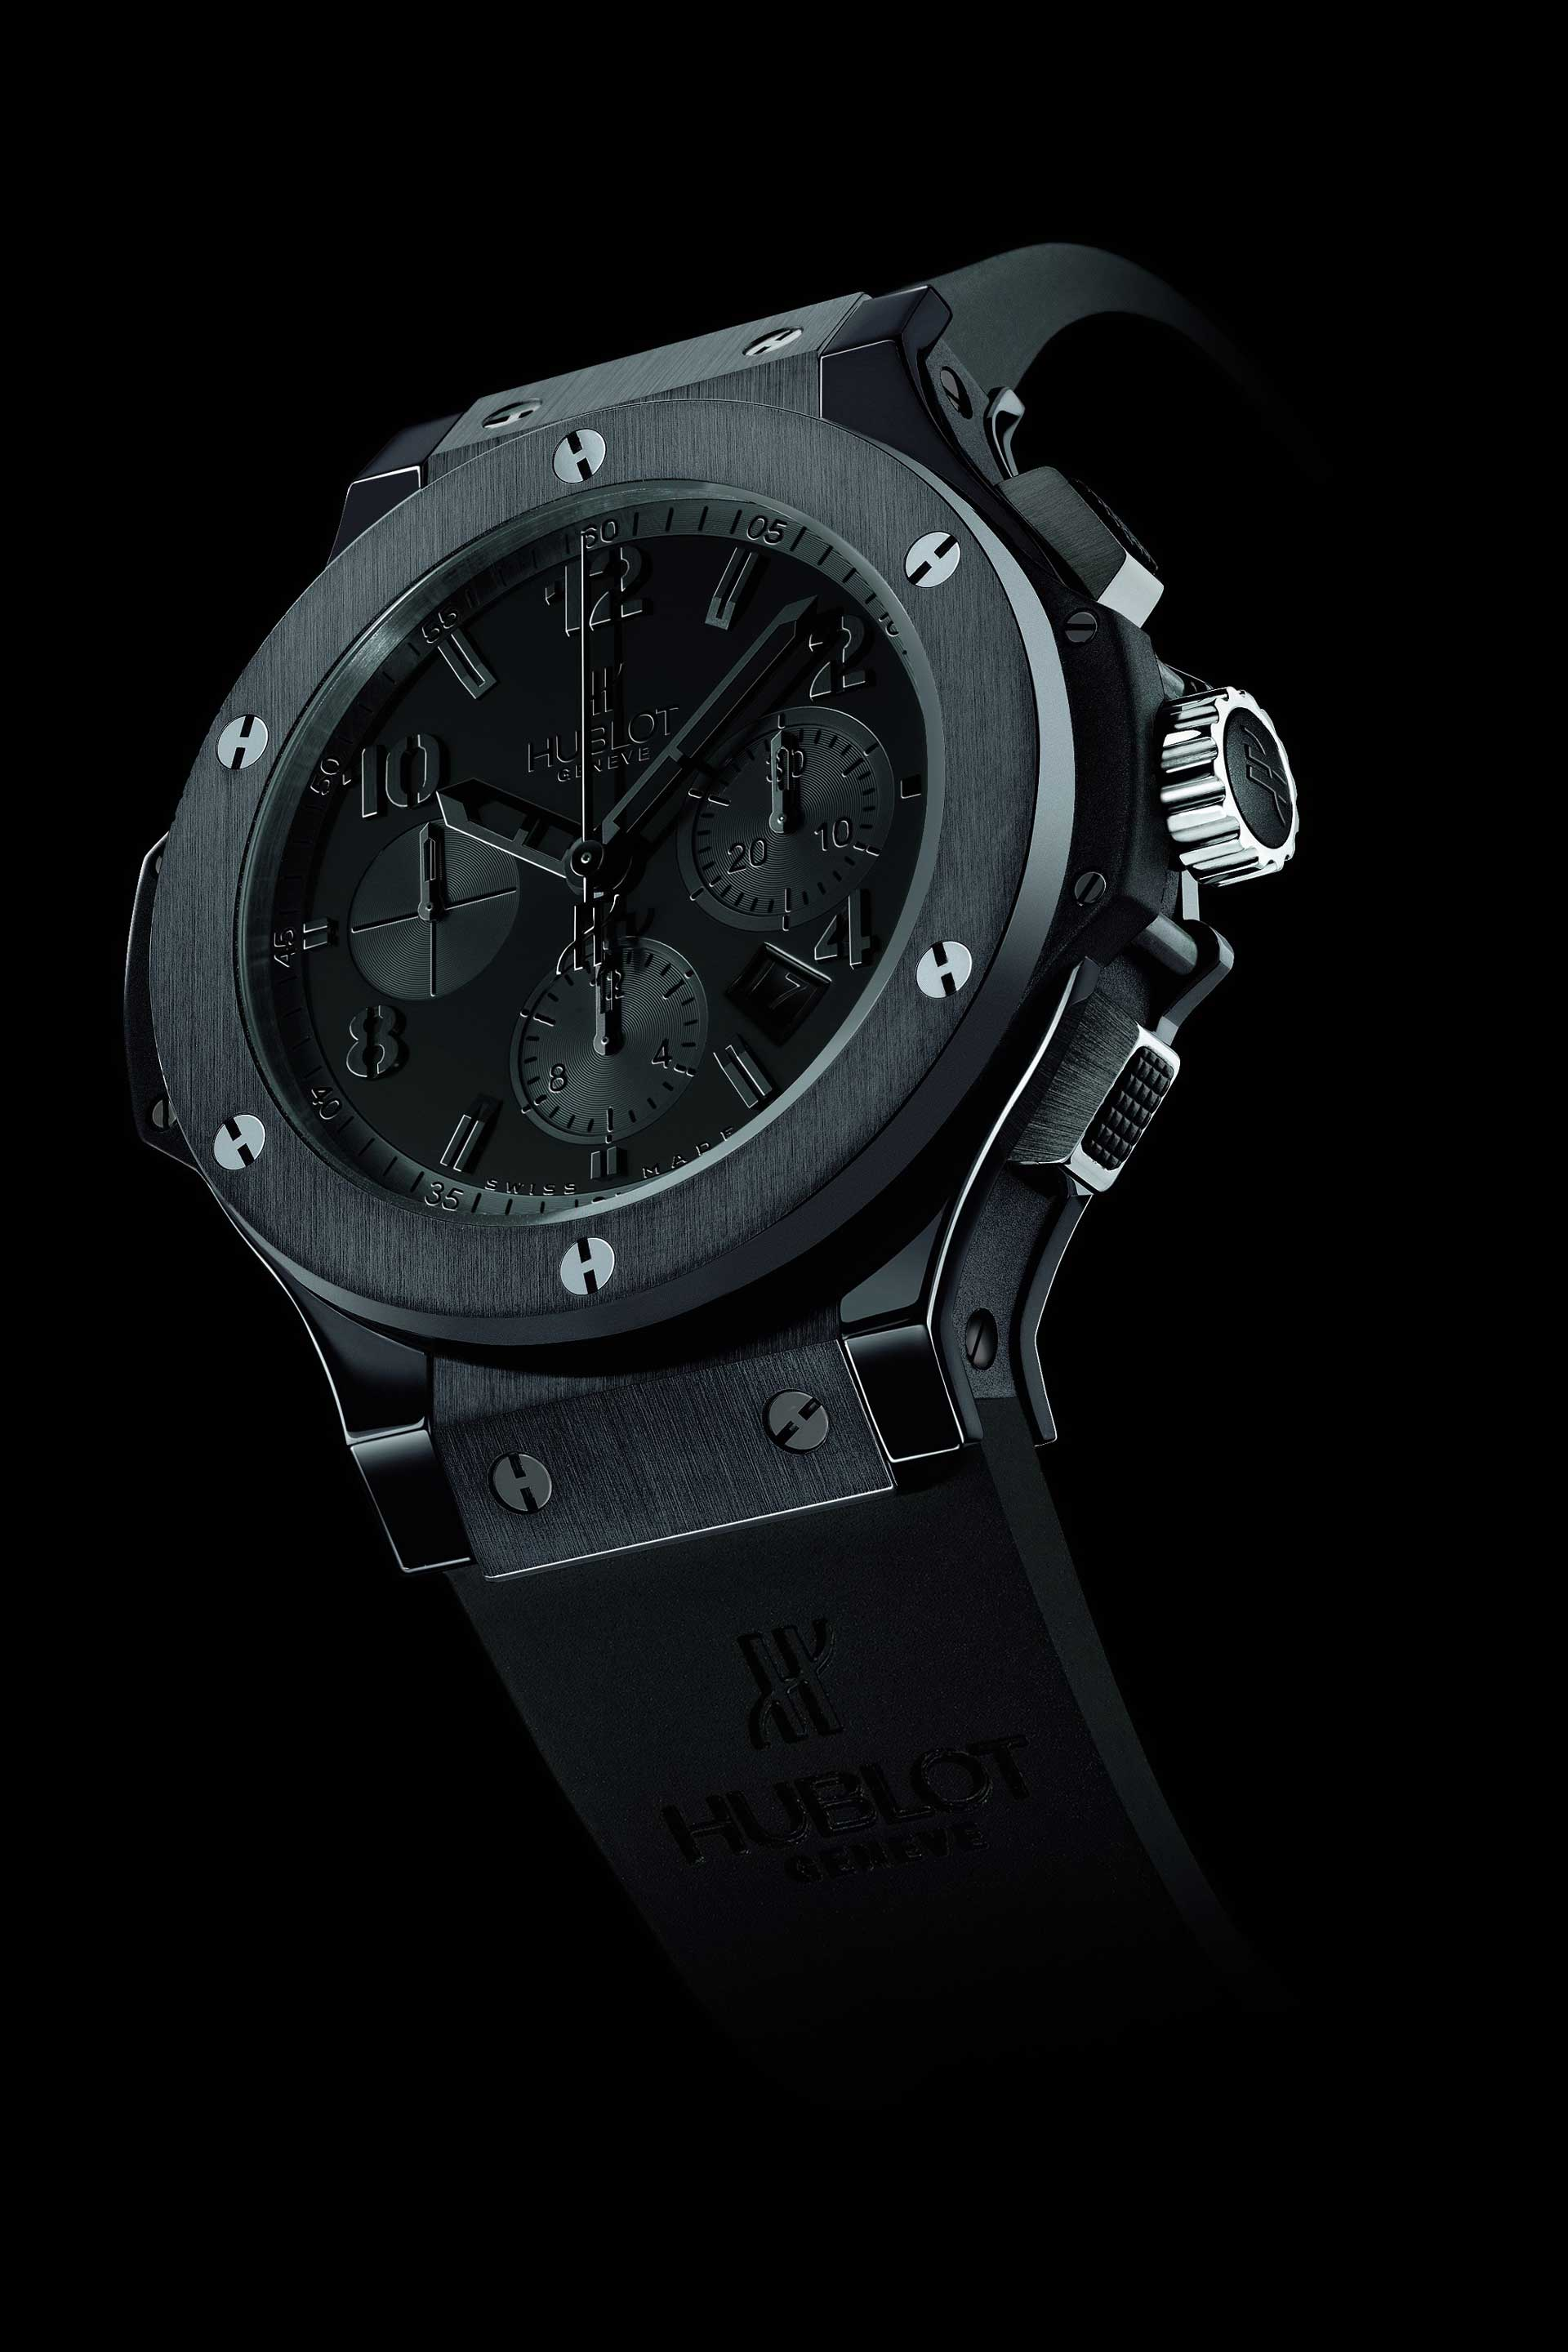 The original Hublot Big Bang All Black created in 2006.